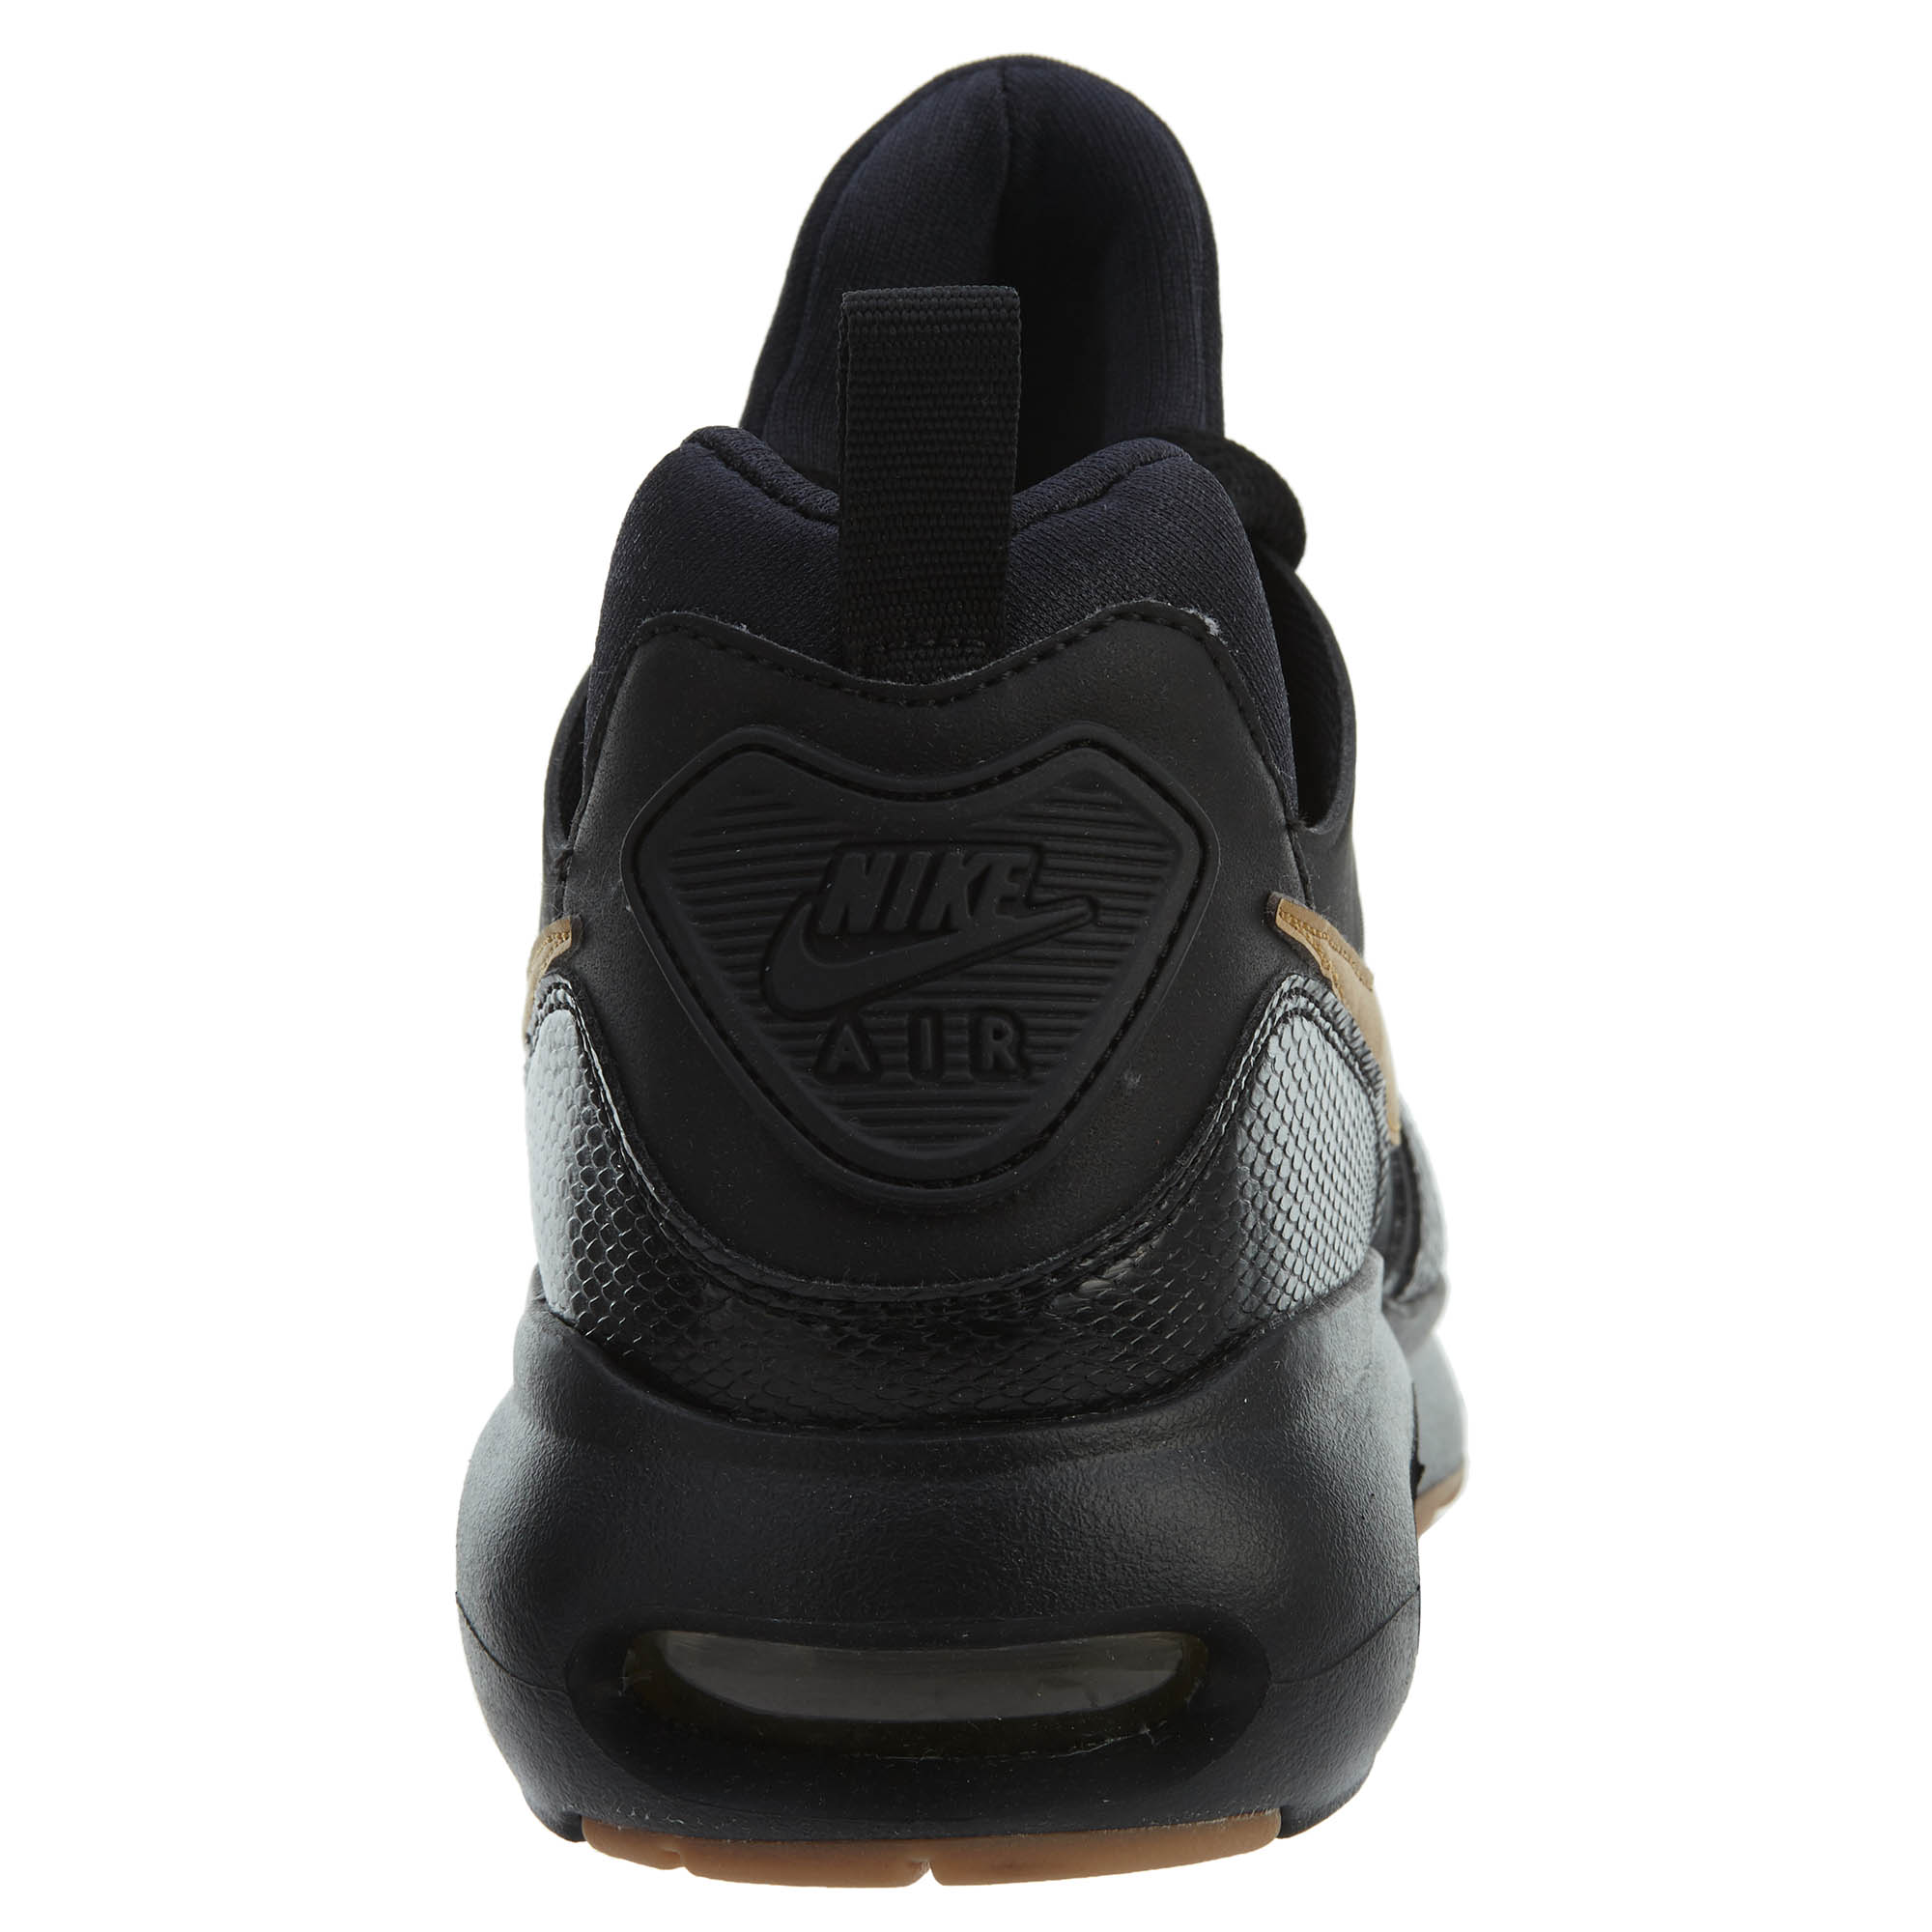 Nike Mens Air Max Prime Economical, stylish, and eye-catching shoes